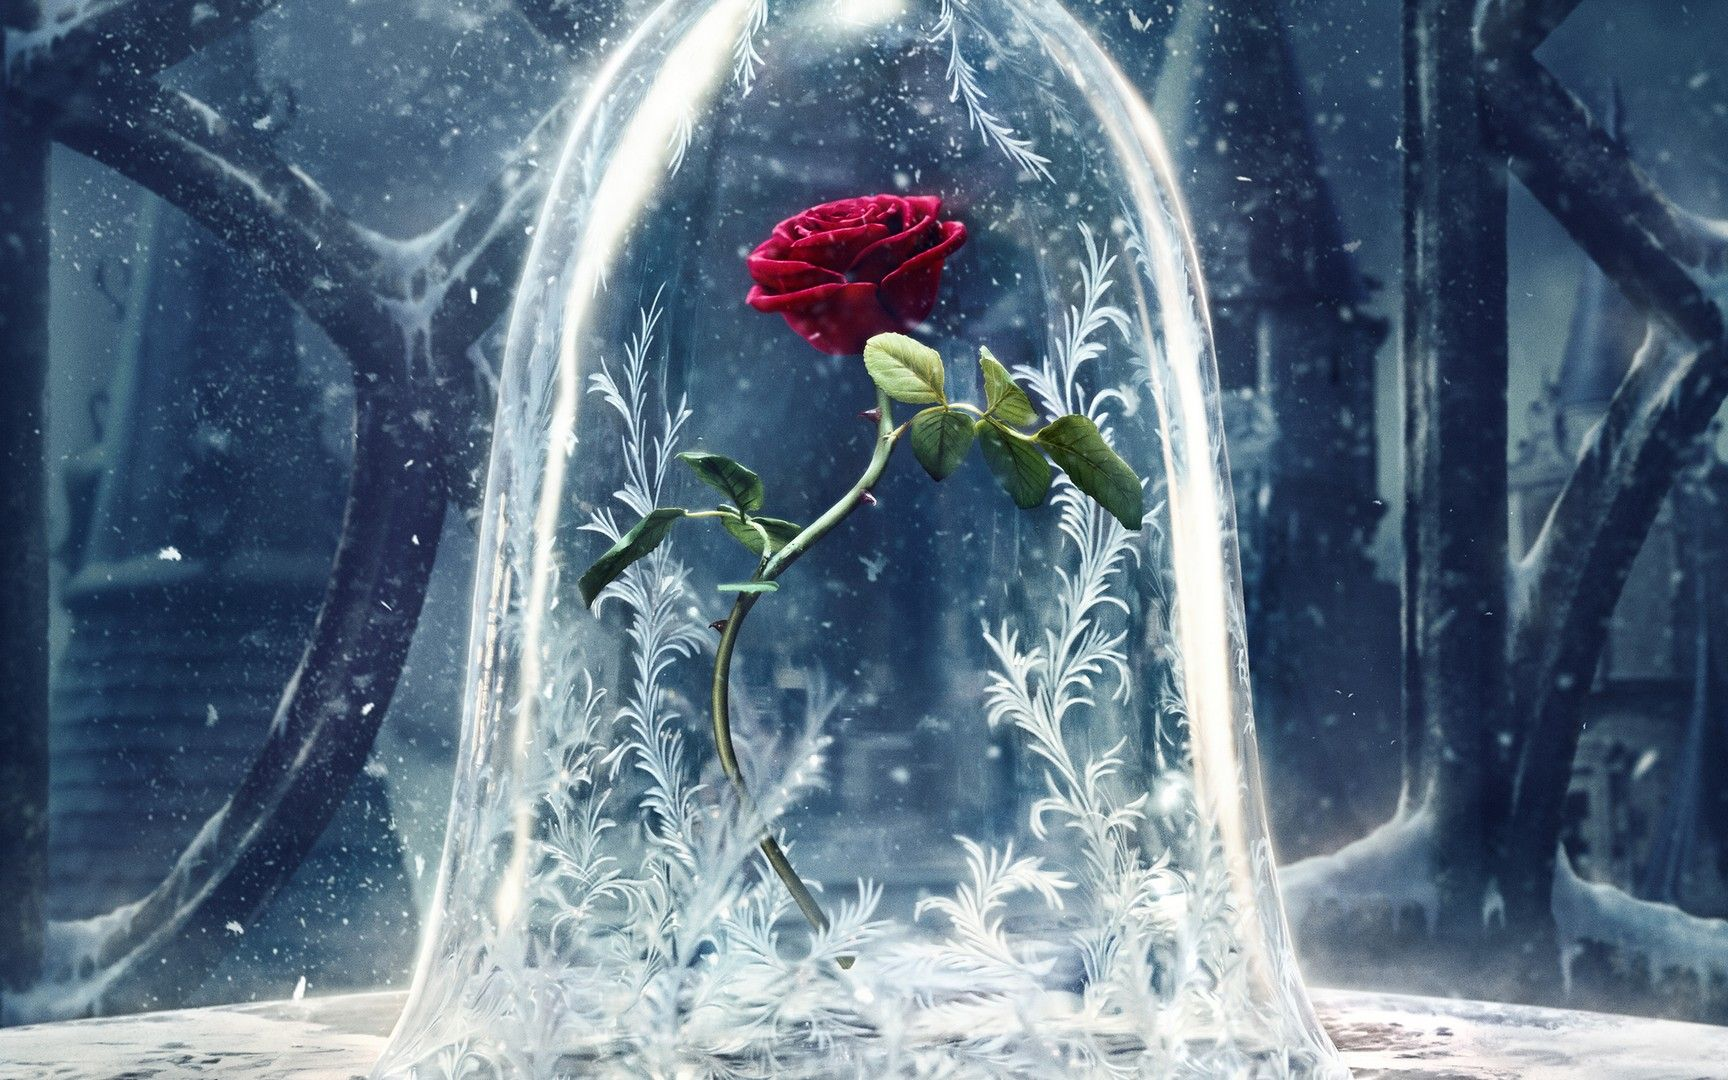 HD Beauty and the Beast wallpaper | Beauty & The Beast | Pinterest